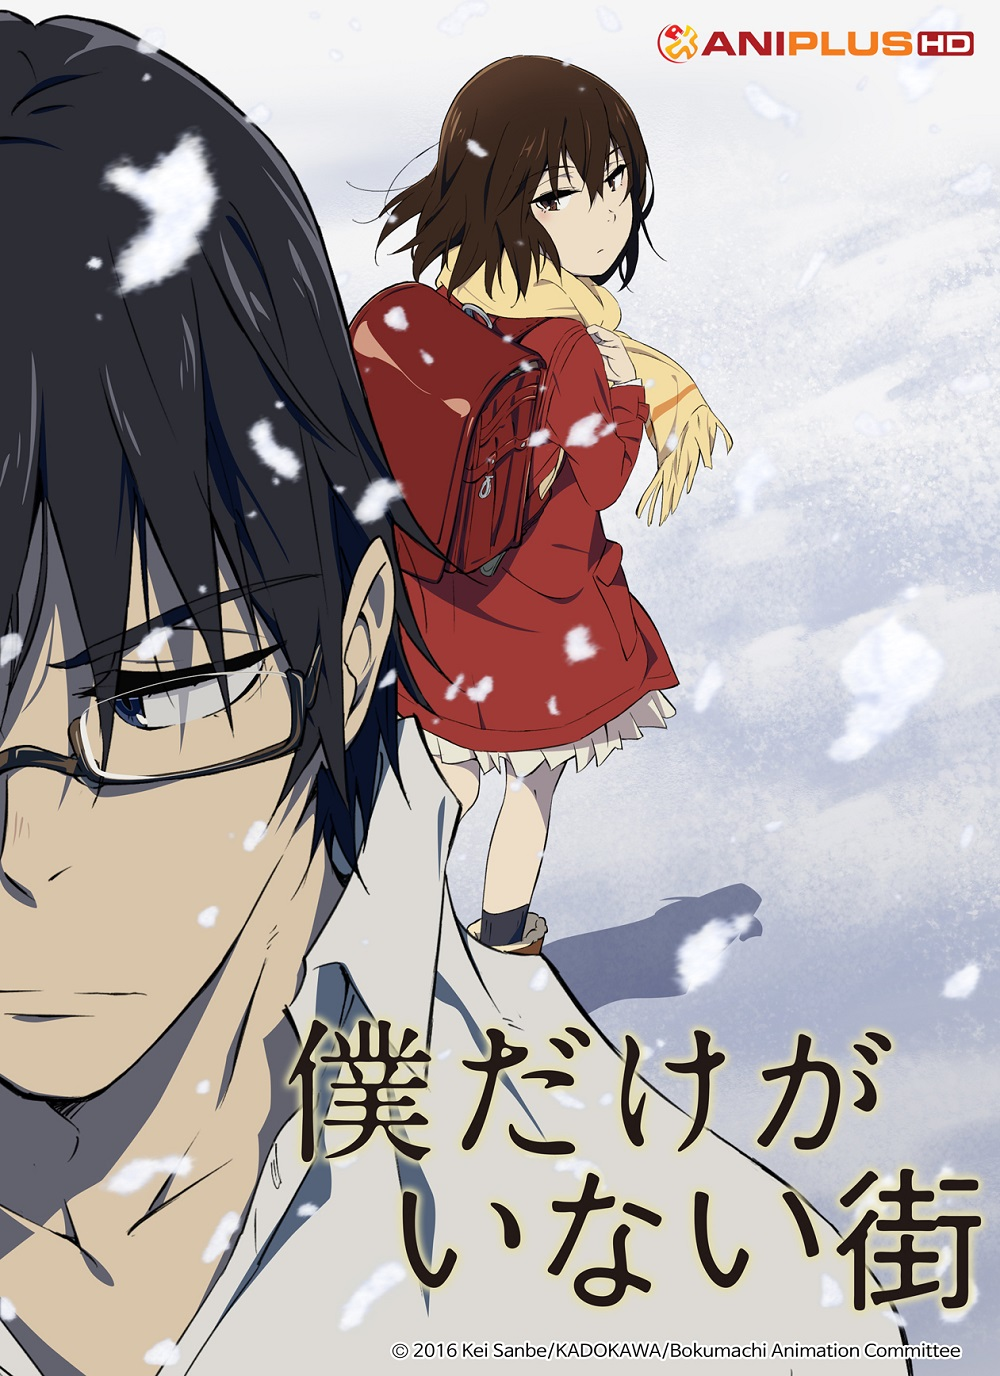 ERASED_ANIPLUS-lowres